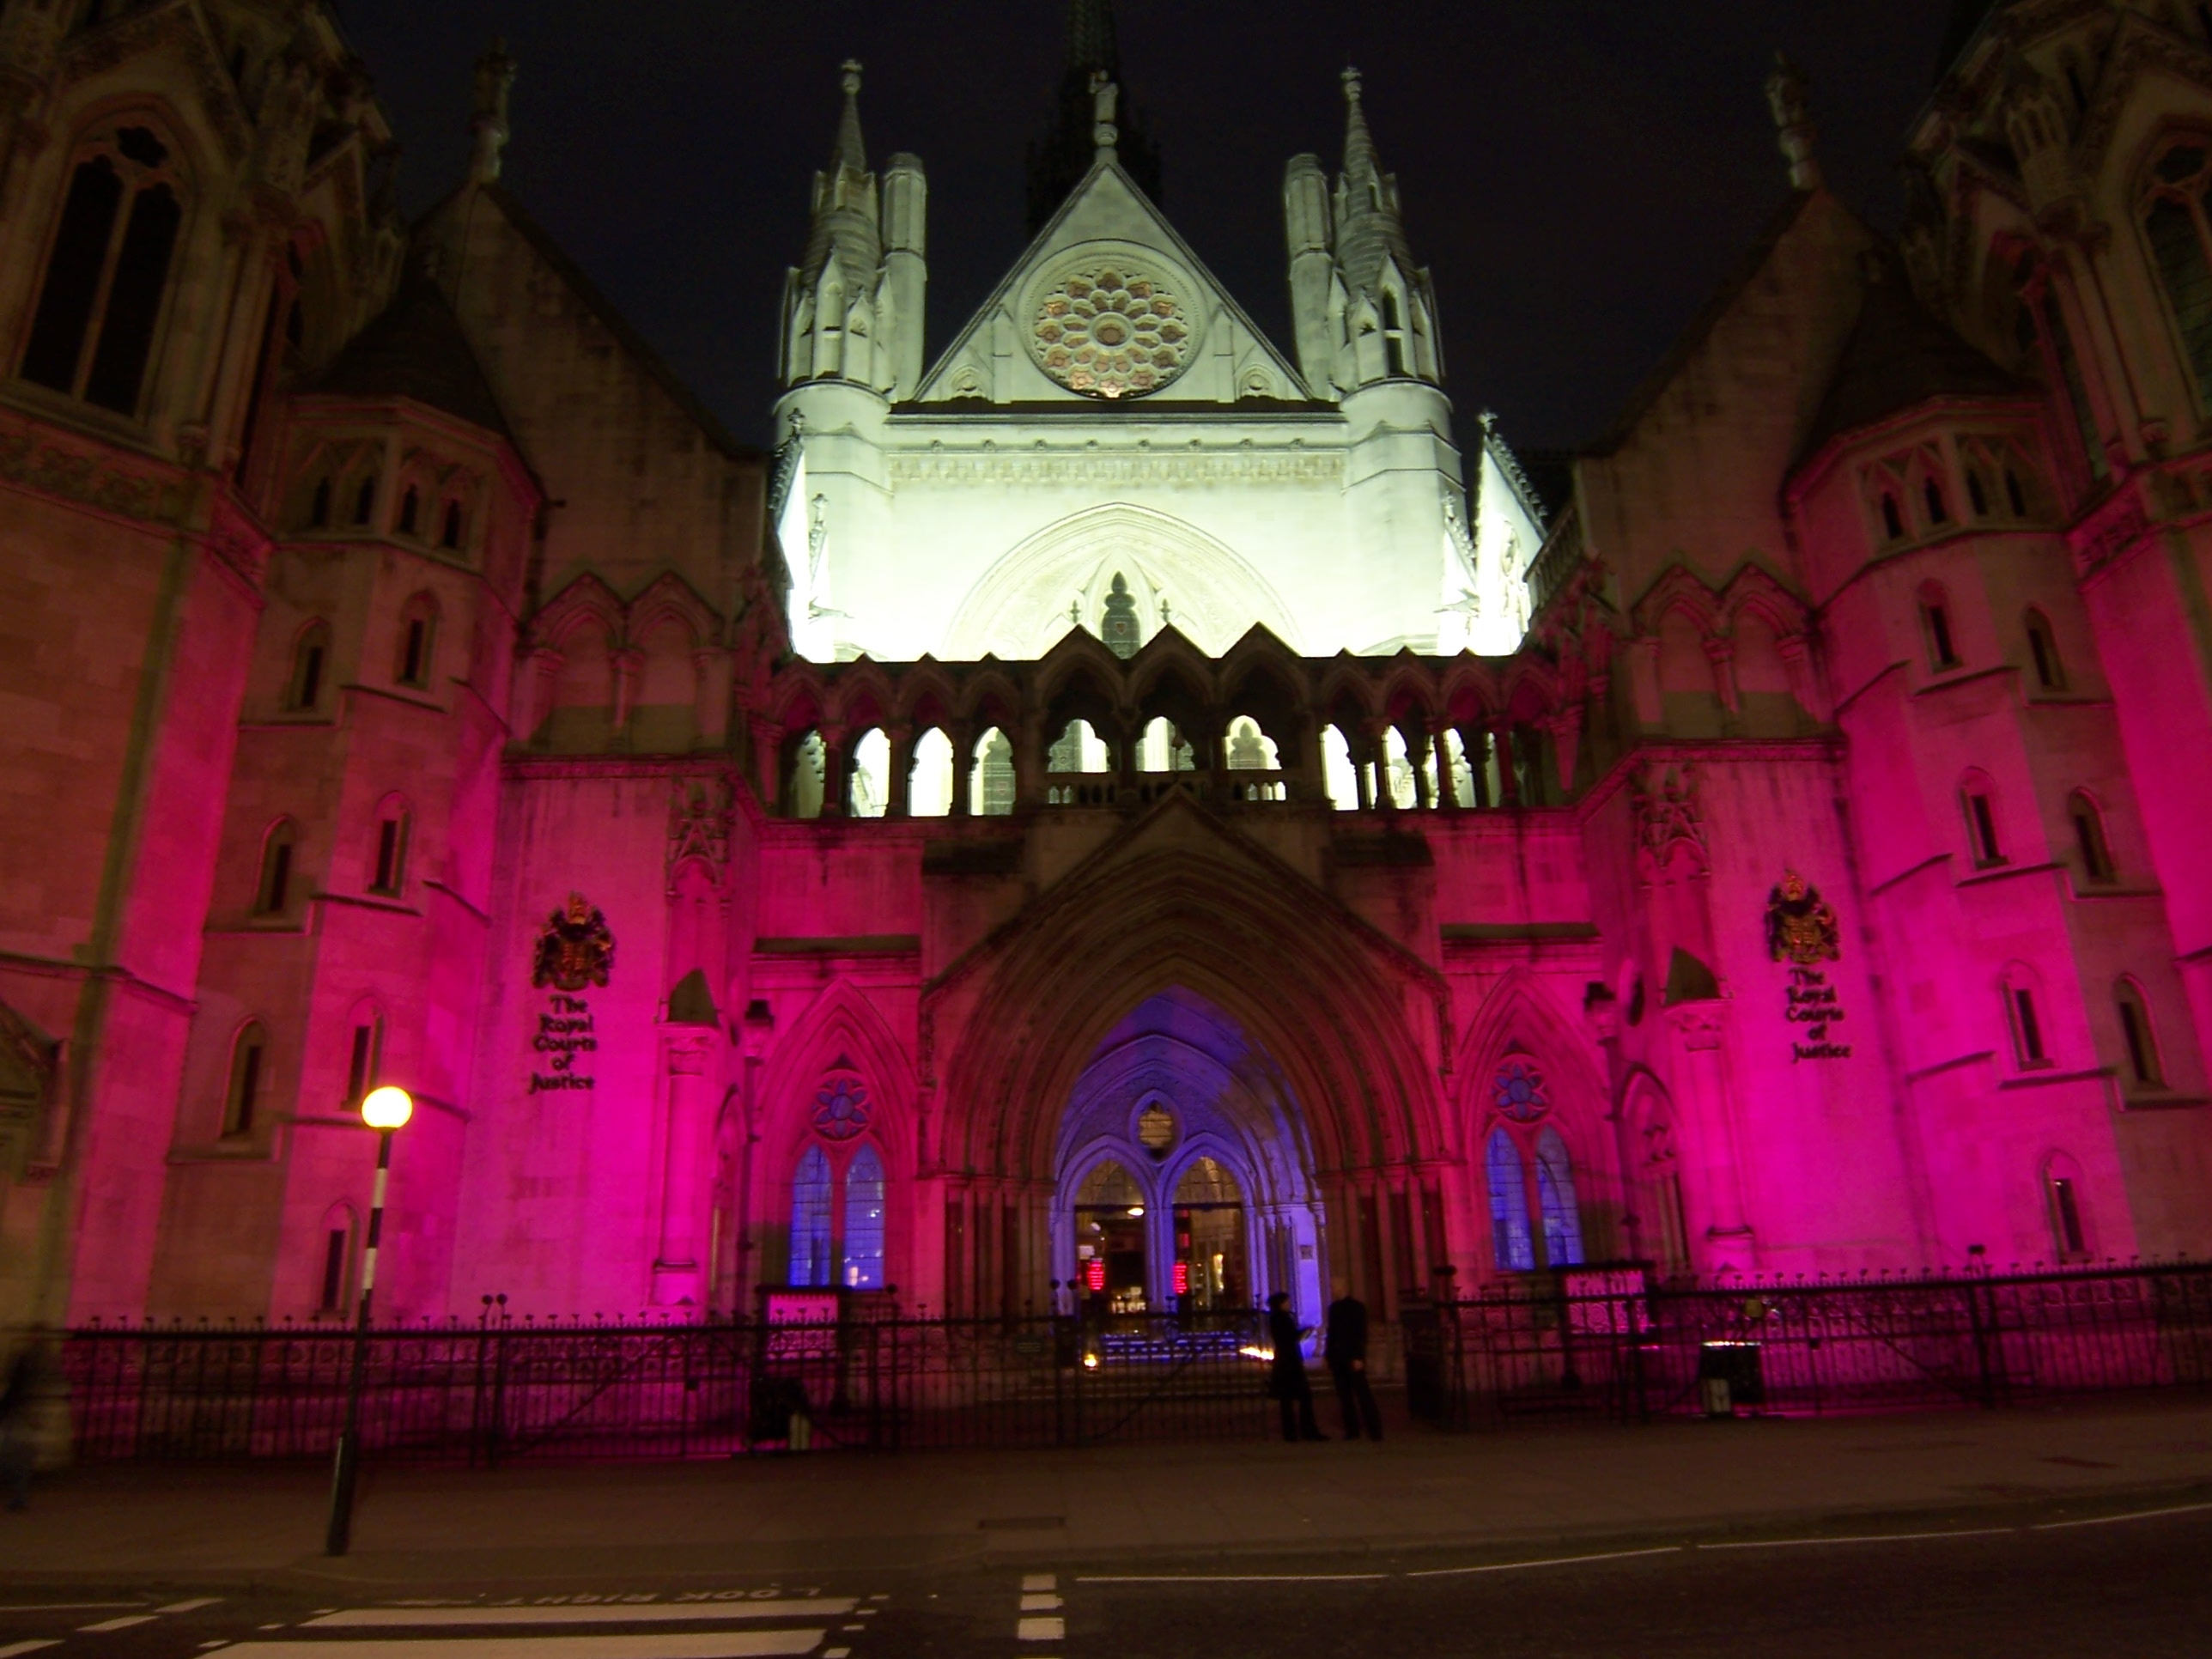 Palatinate Christmas Ball, Royal Courts of Justice, London � Friday 16 December 2011, from 7:00pm until Midnight